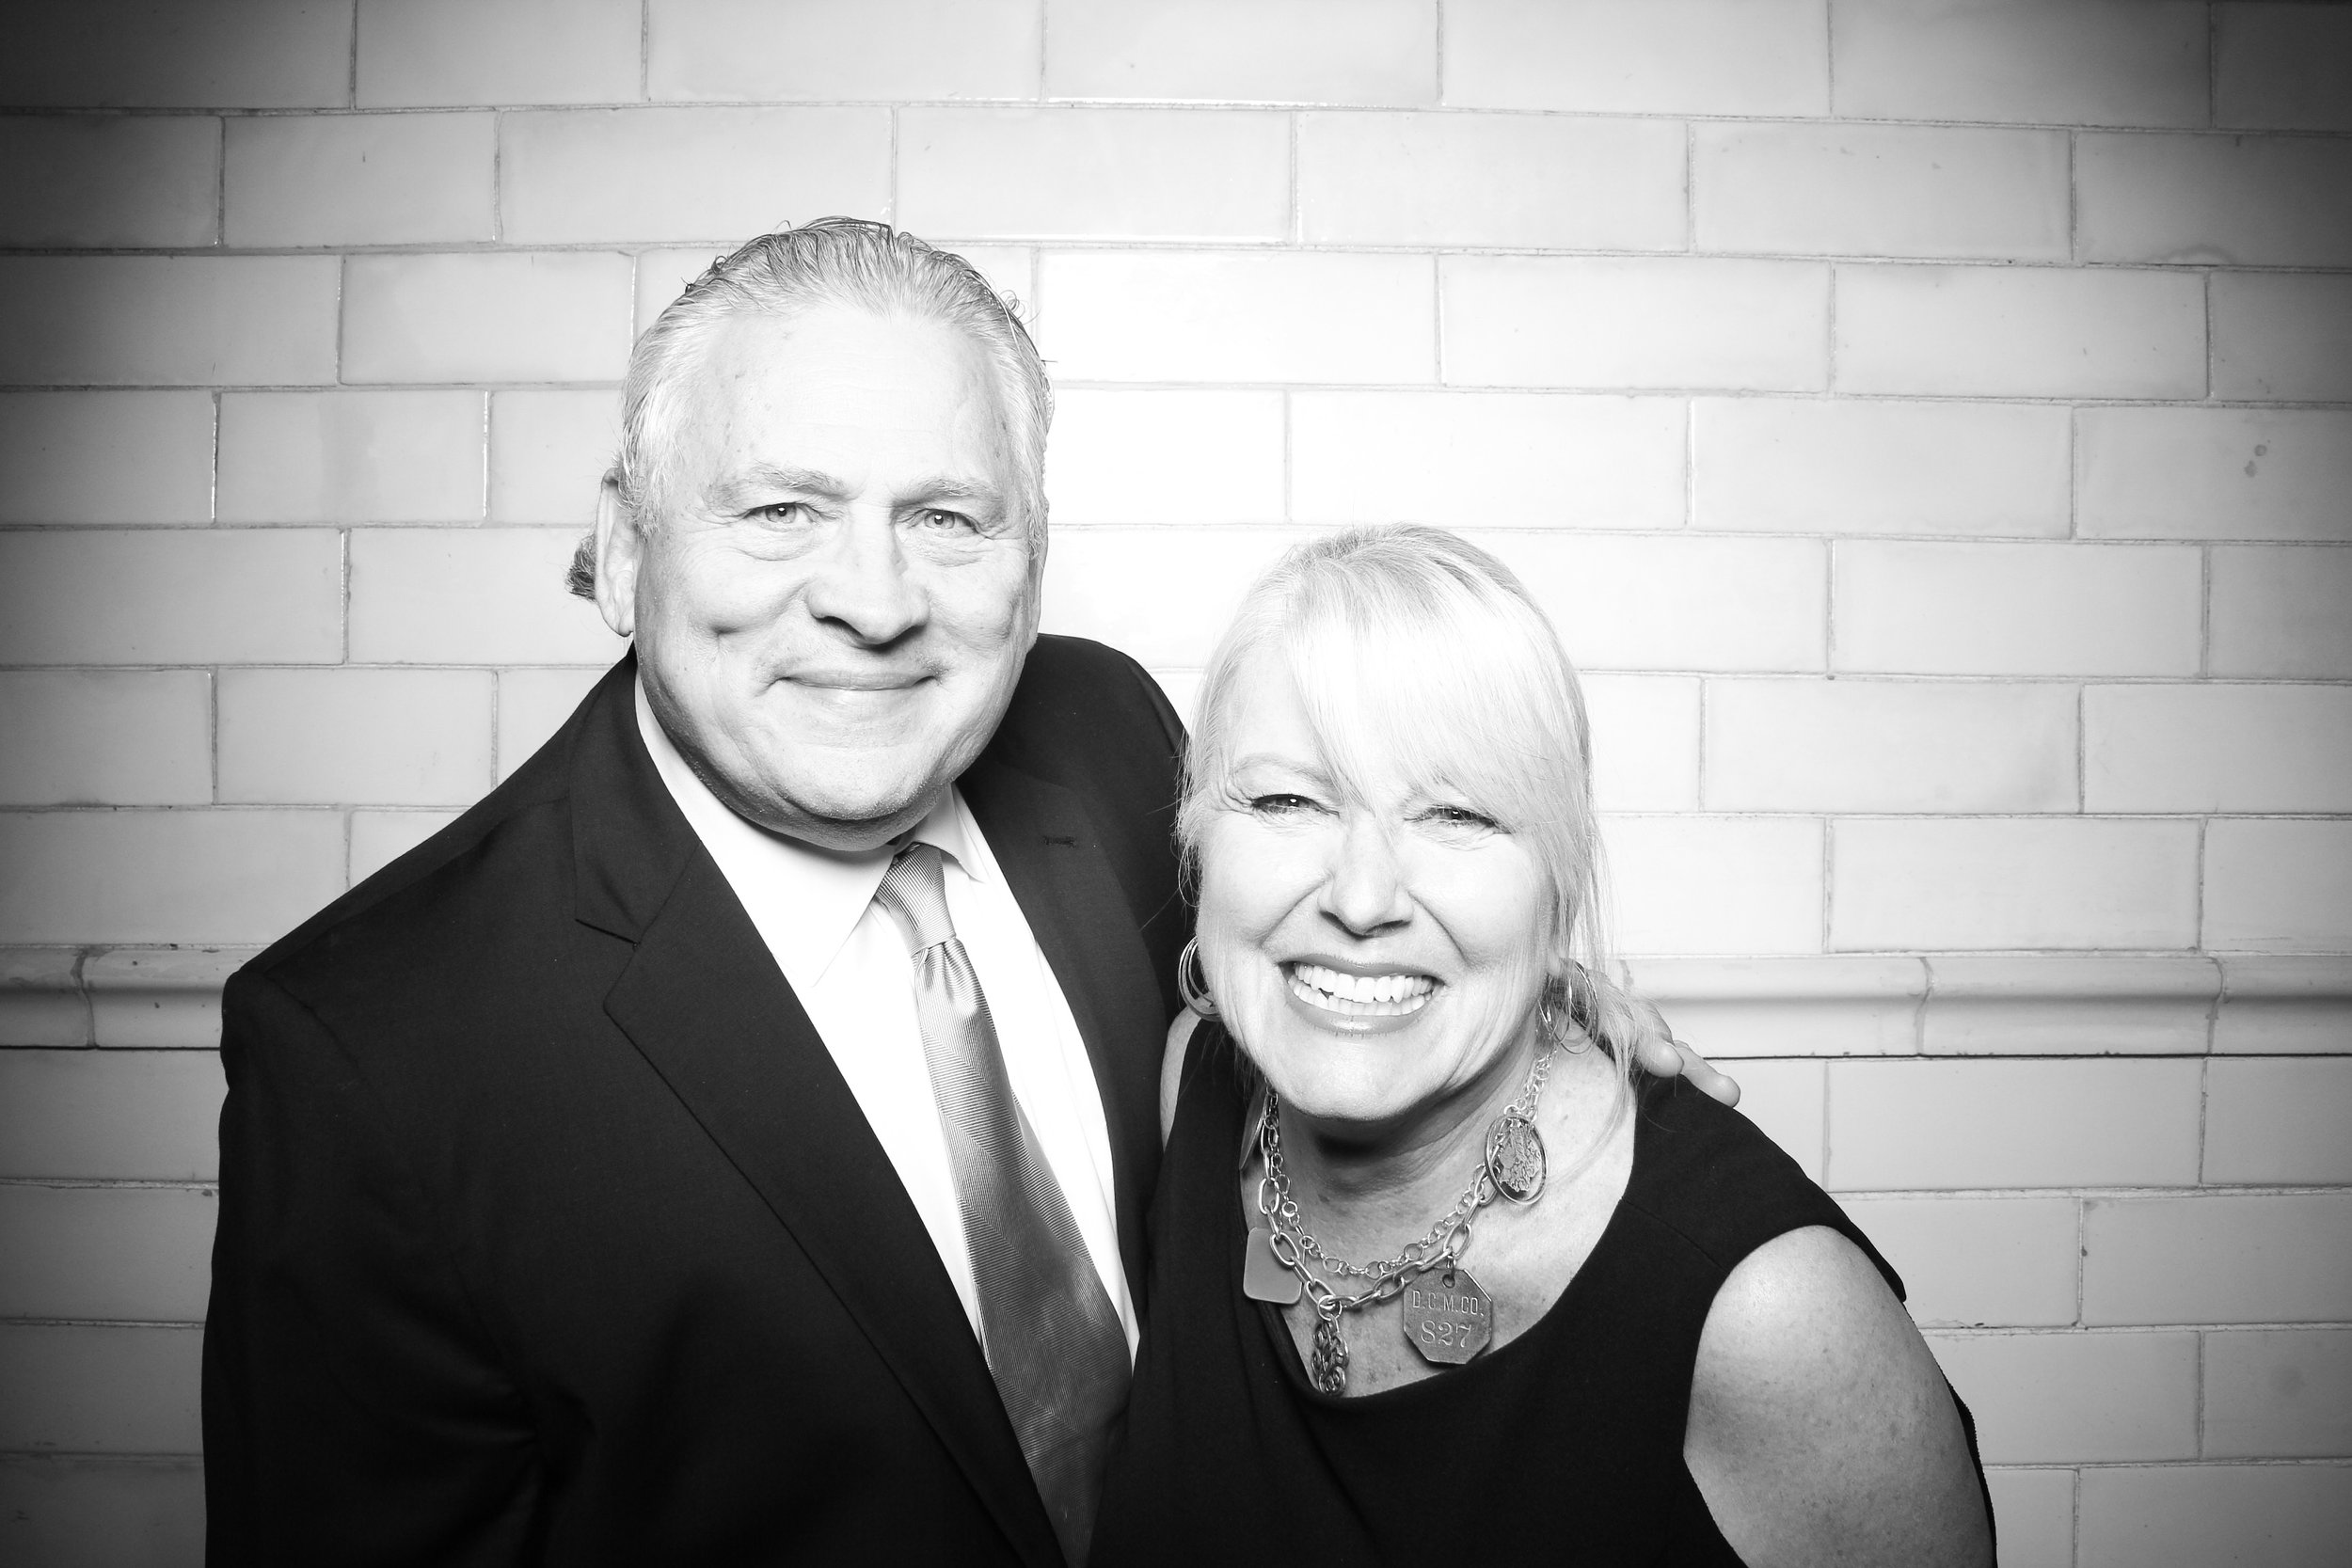 Firehouse_Chicago_Edgewater_Wedding_Reception_Photo_Booth_20.jpg